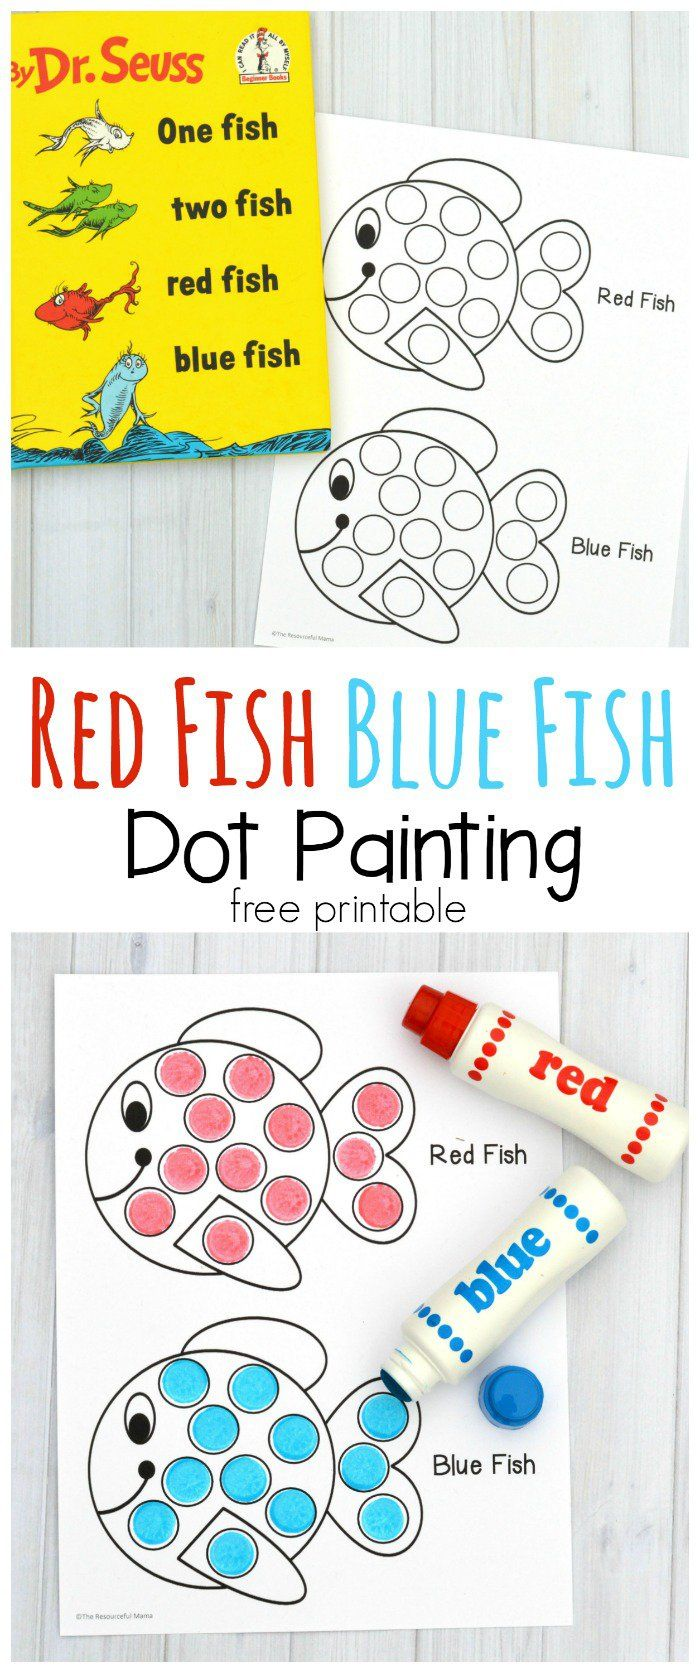 image about One Fish Two Fish Printable called Pink Fish Blue Fish Dot Portray Sport The Innovative